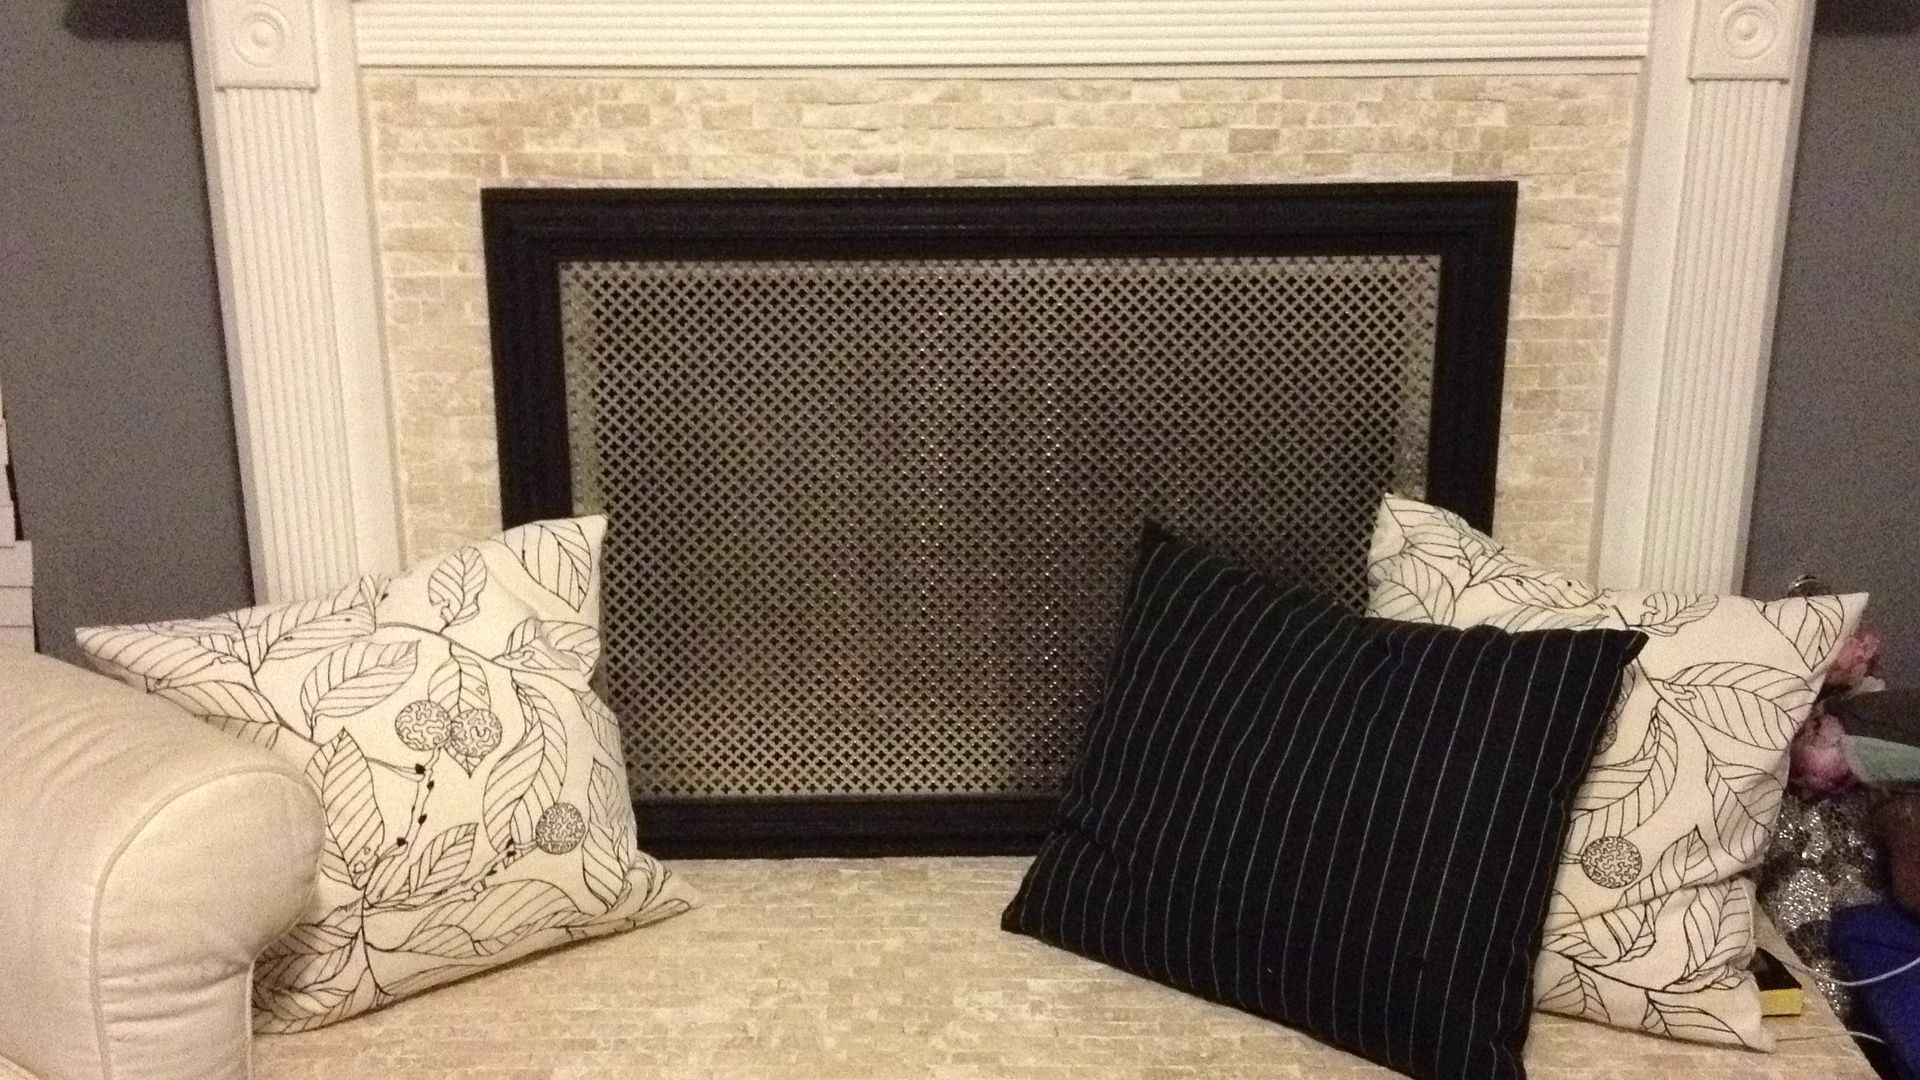 diy decorative fireplace screen drop a perforated aluminum sheet